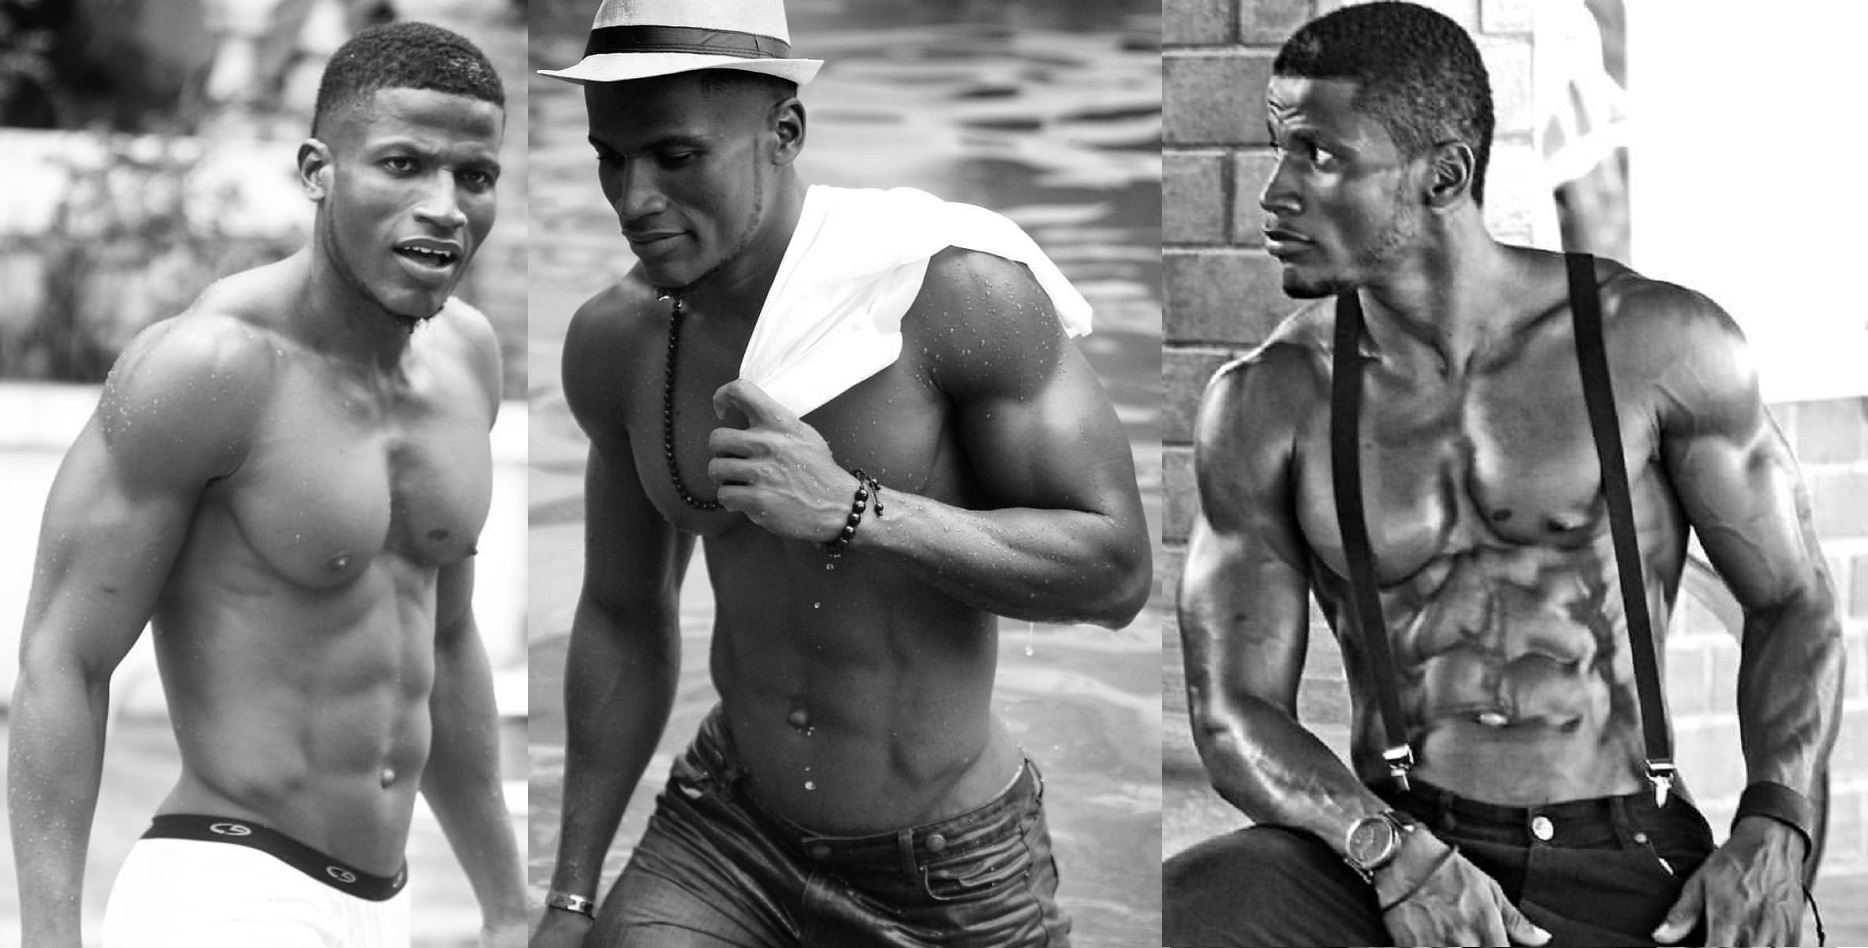 Eye Candy: Haitian Model Waseler Clerville